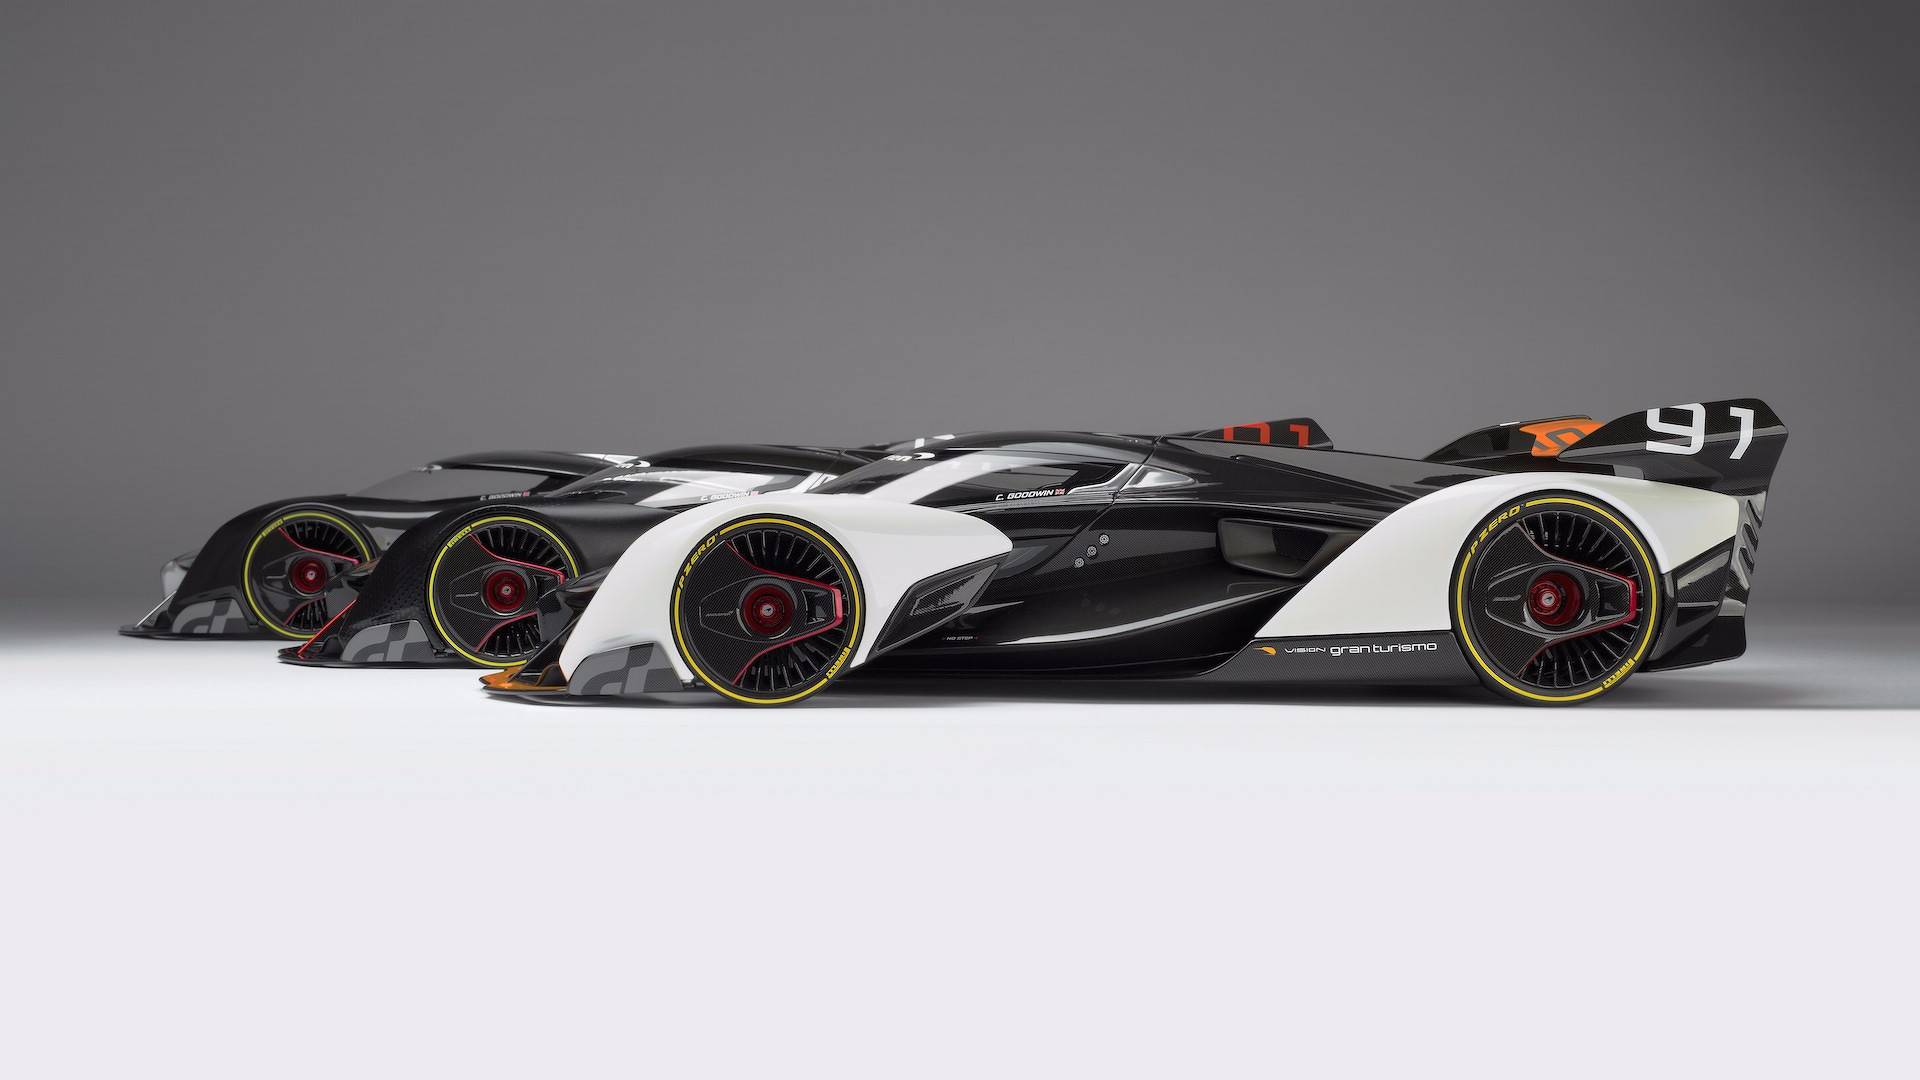 mclaren-ultimate-vision-gt-scale-model (10)